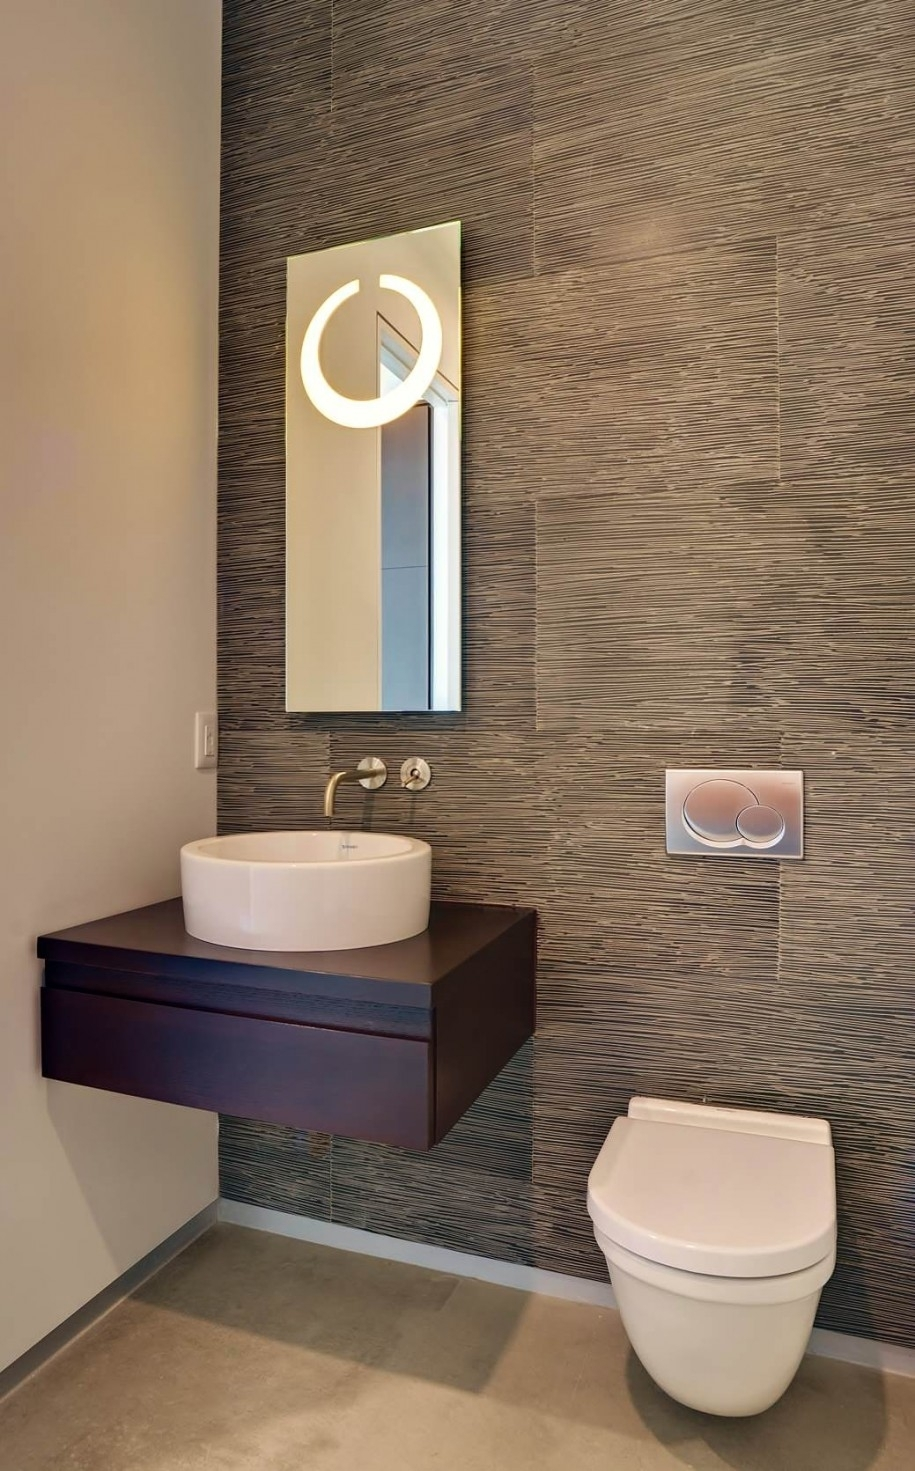 Modern Small Powder Room Design Featuring Cool Grey Wood Grain With Regard To Latest Wall Accents Behind Toilet (View 13 of 15)